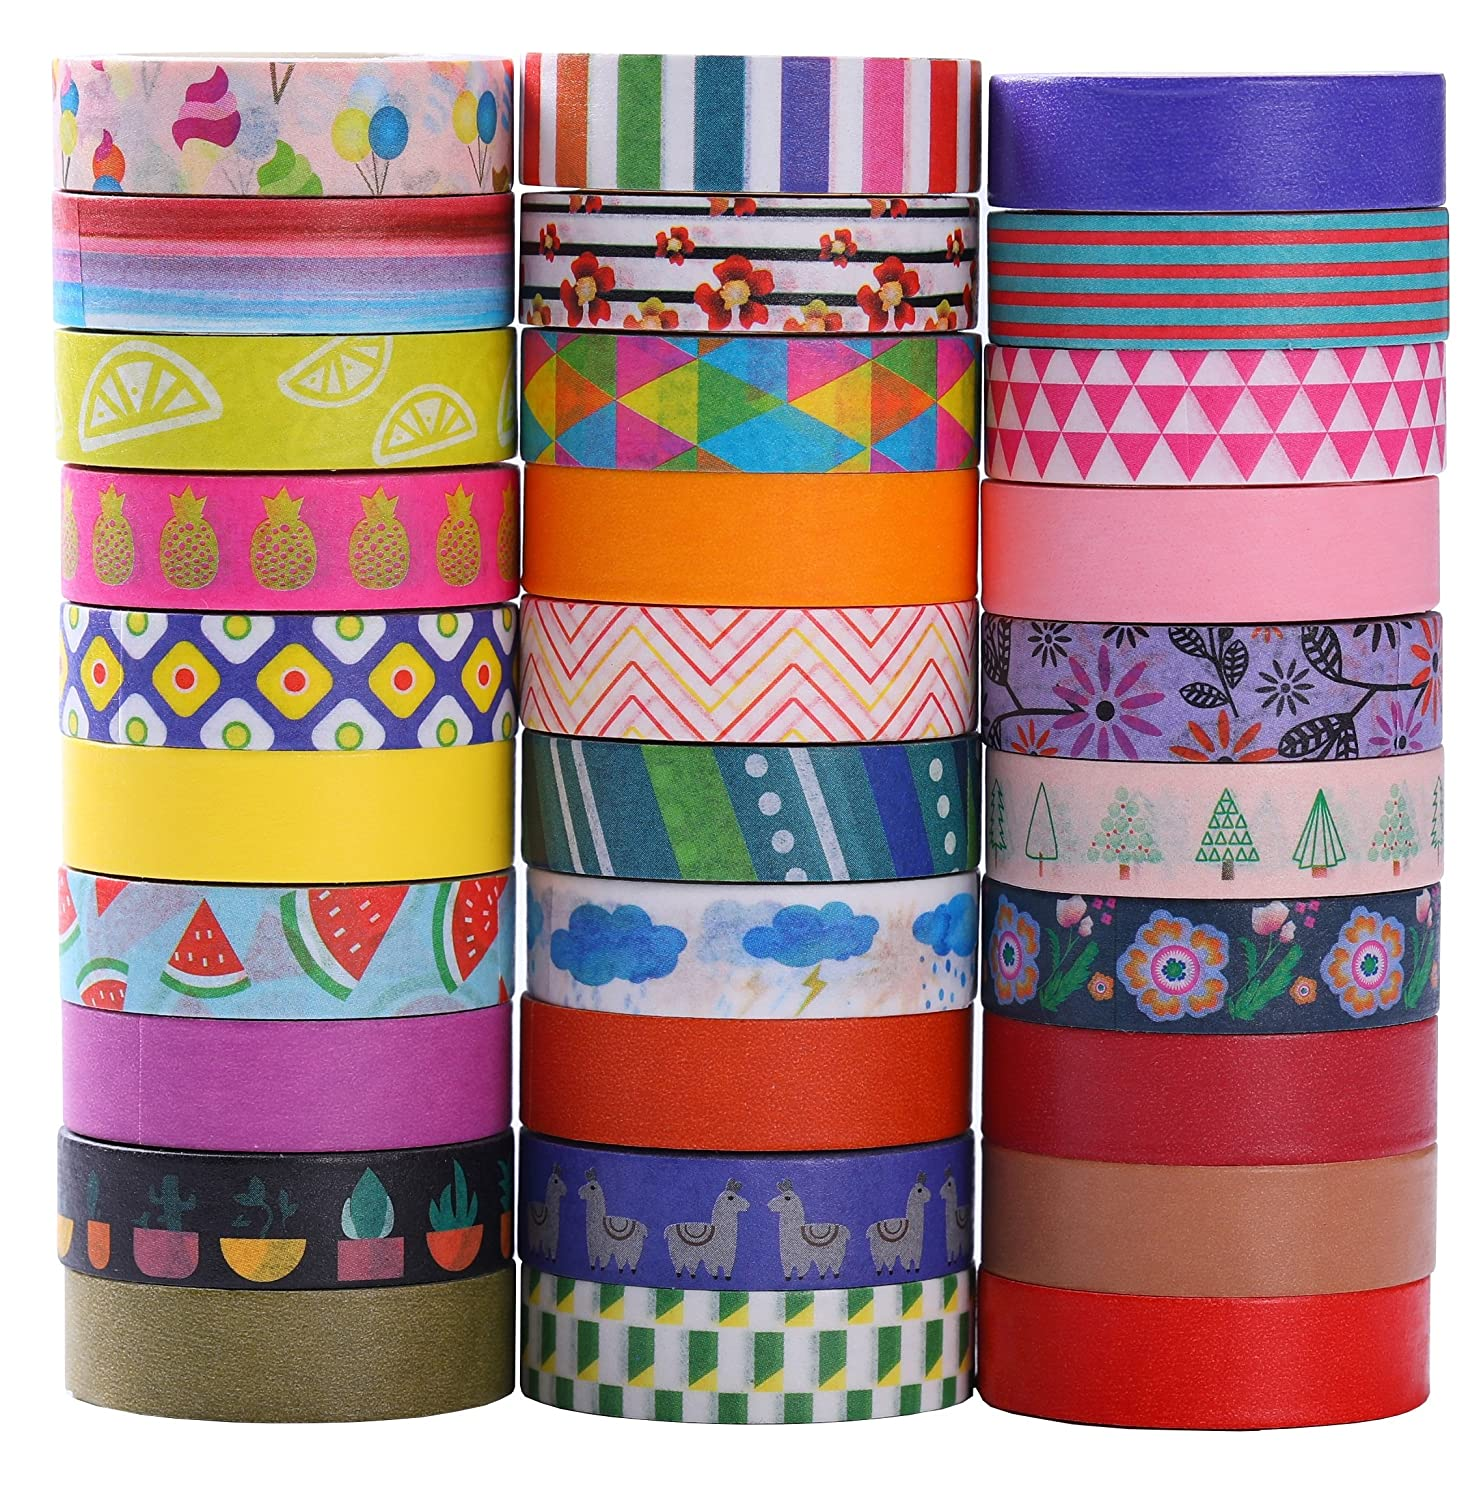 30 Rolls Washi Tape Set - 10mm Wide, Colorful Flower Style Design, Decorative Masking Tape for DIY Craft Scrapbooking Gift Wrapping Hoomn